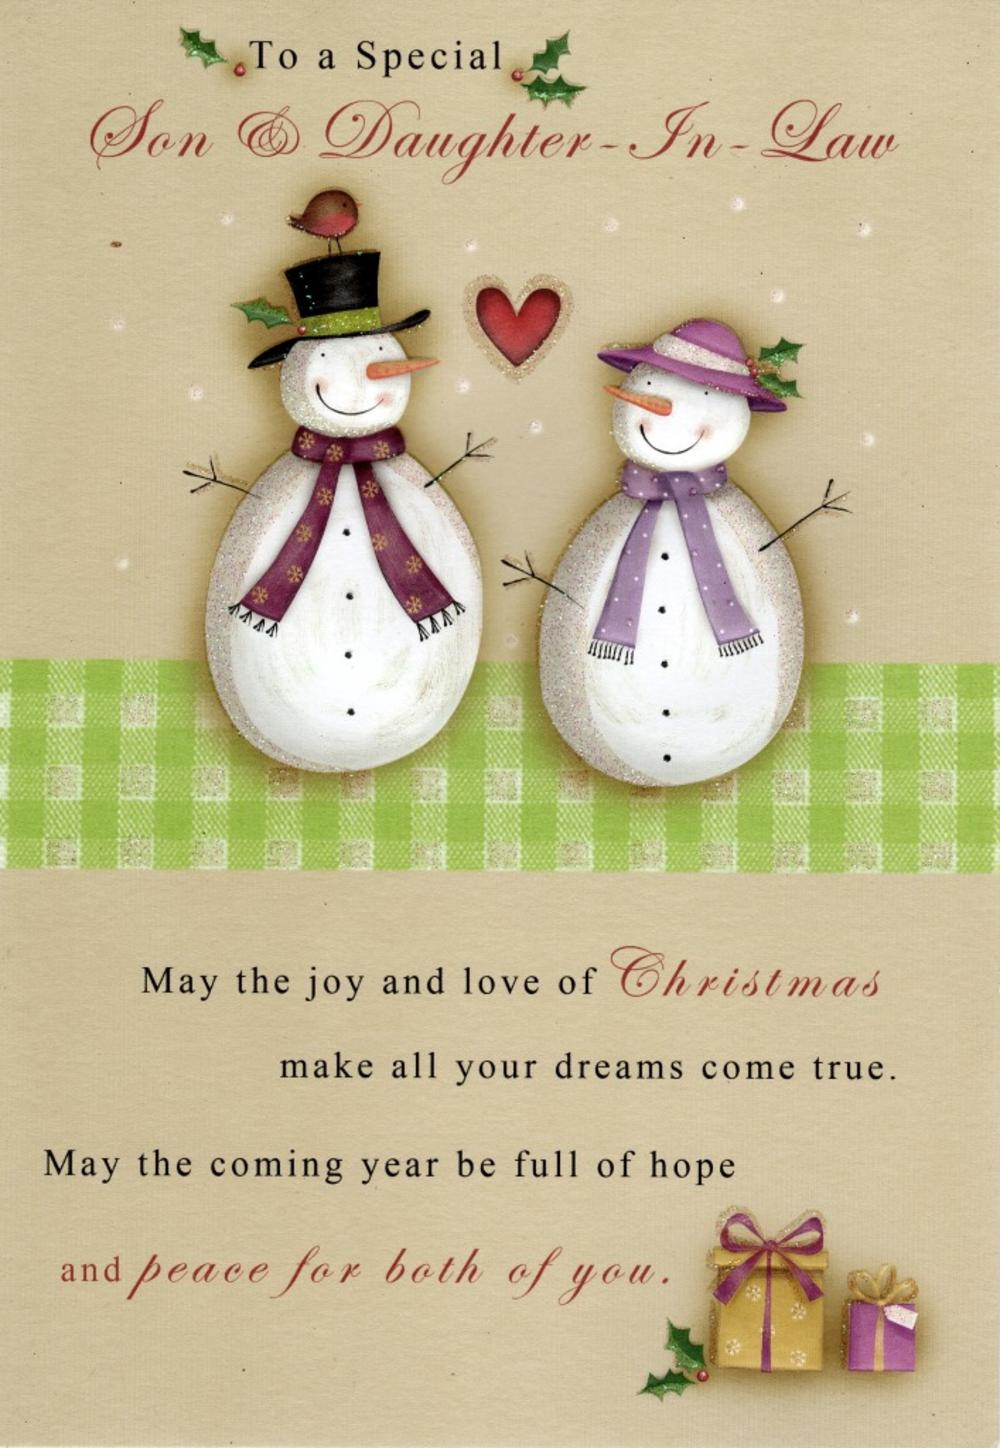 Son & Daughter-In-Law Christmas Greeting Card | Cards | Love Kates